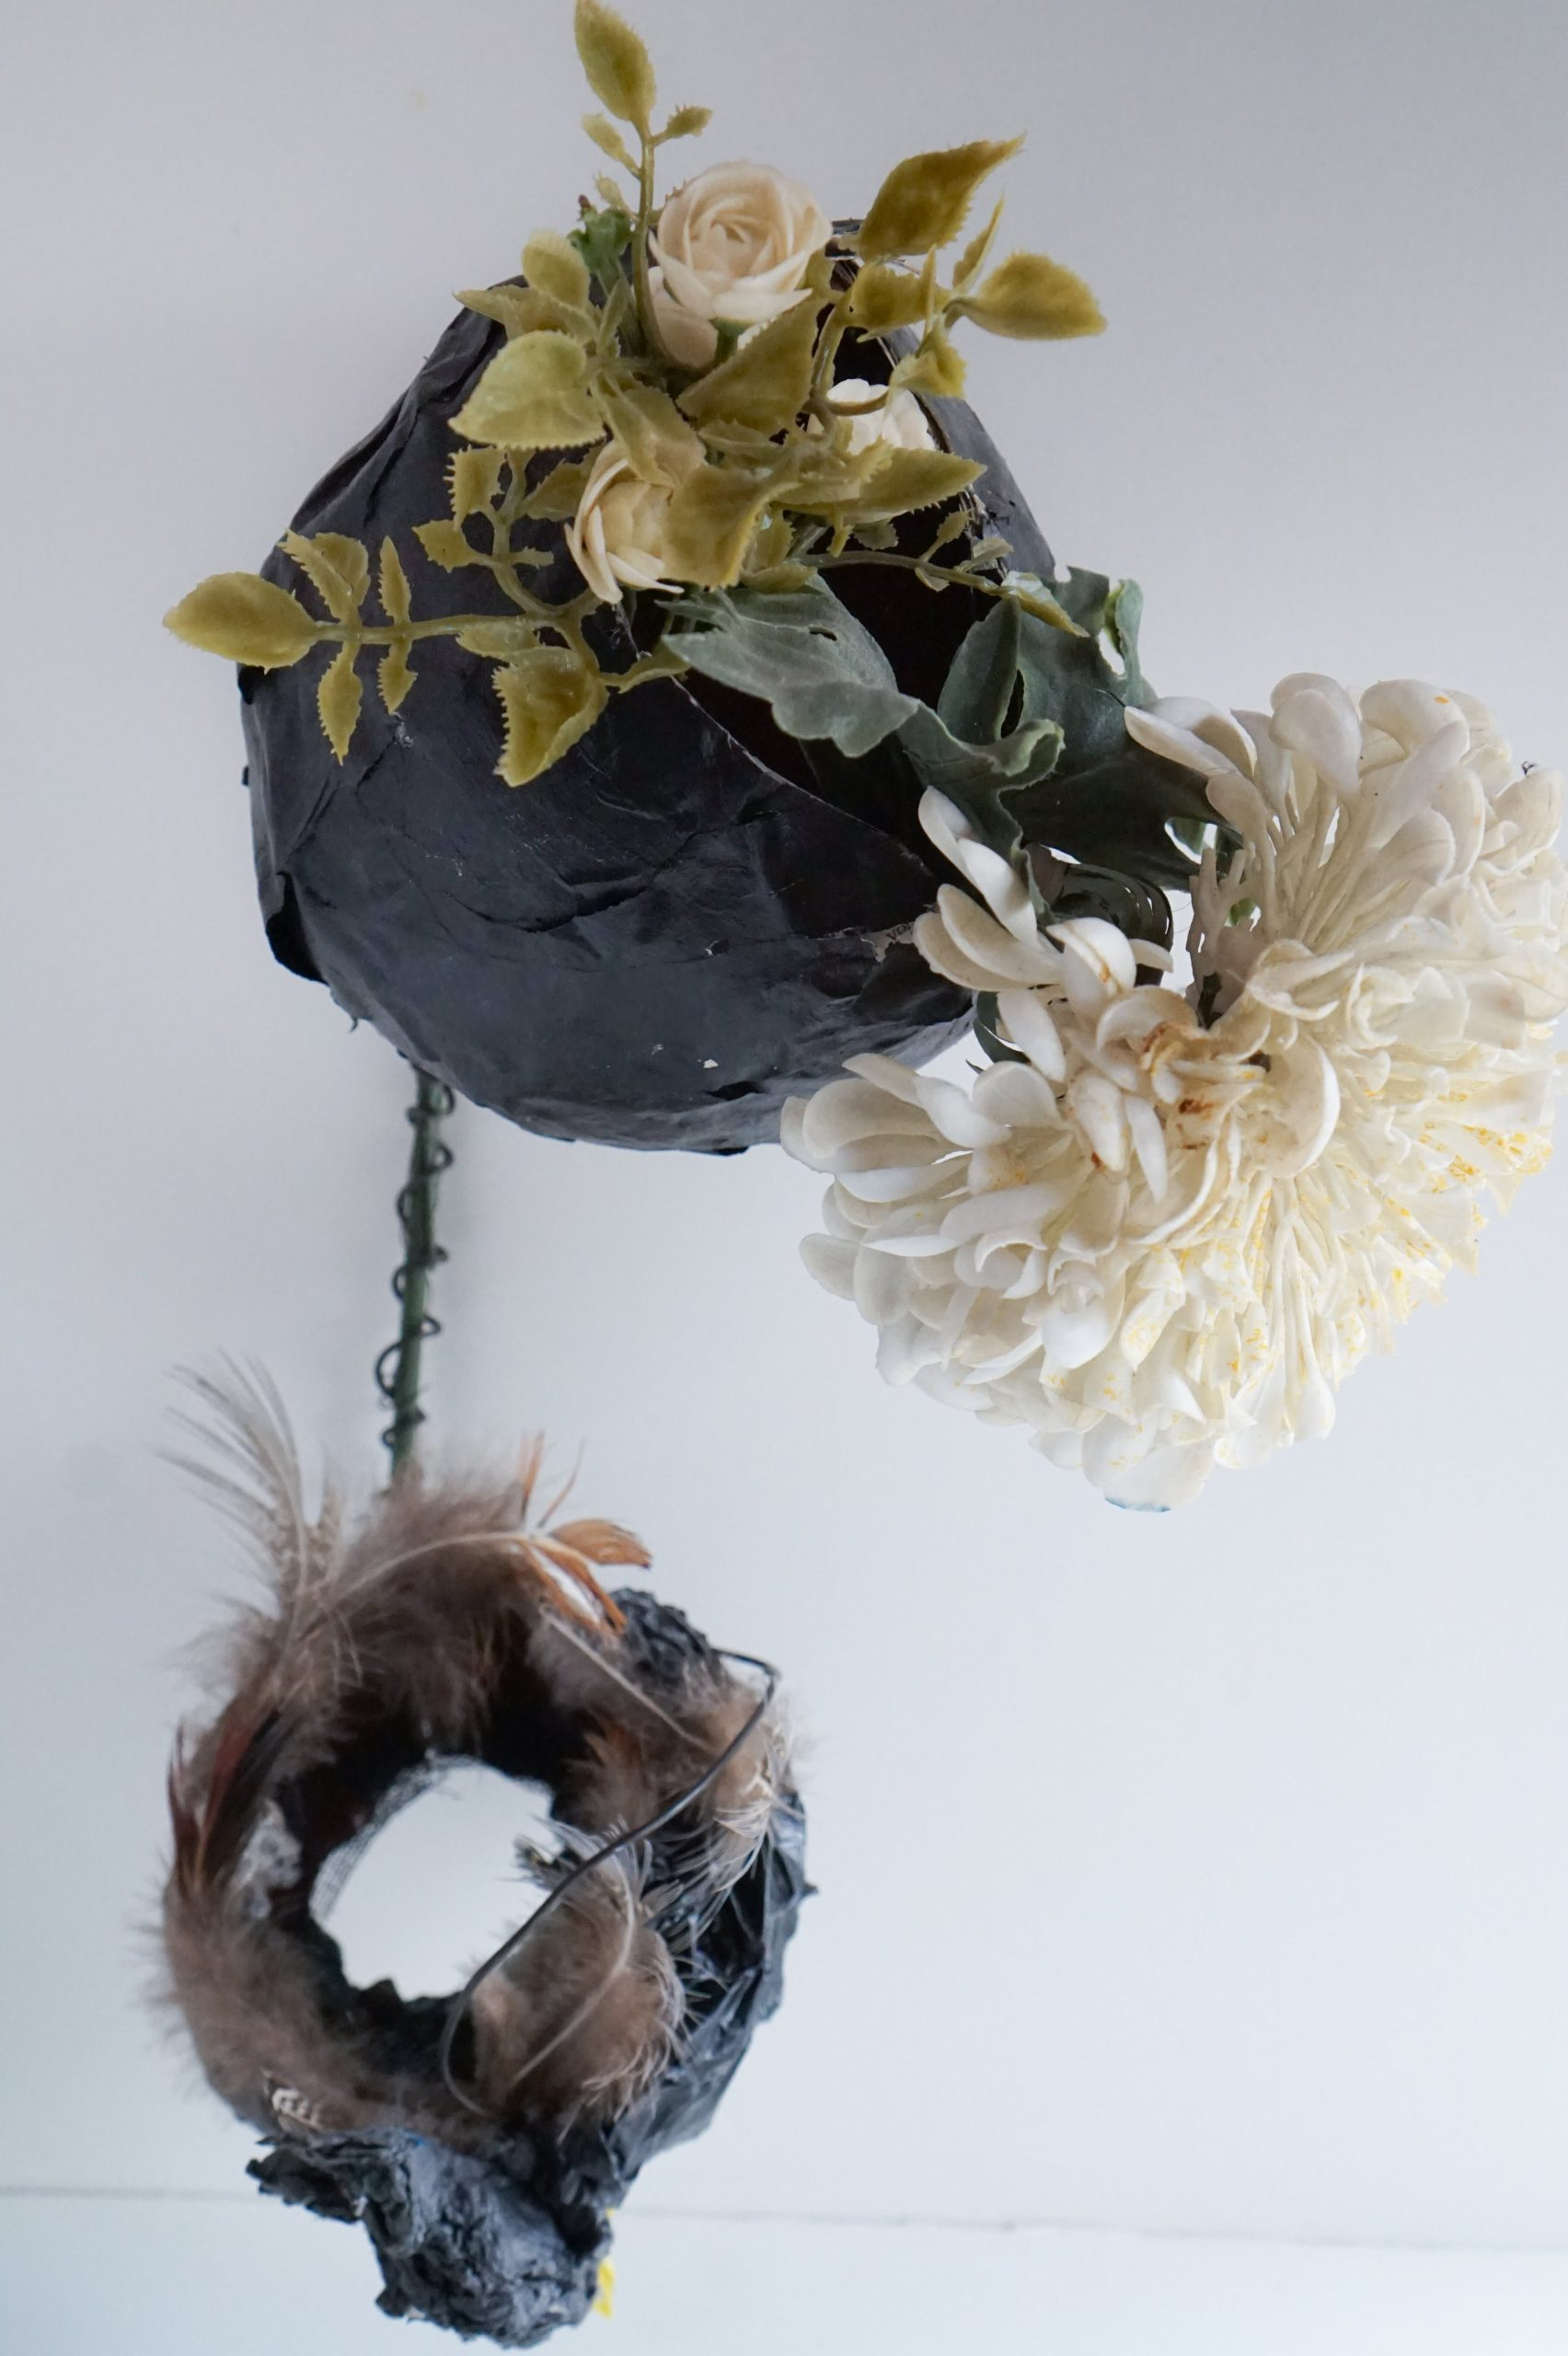 """Thingamabob #1. 2014. Paper, feathers, wire, glitter, pastel, paint, plastic flowers. 13"""" x 9"""" x 11"""